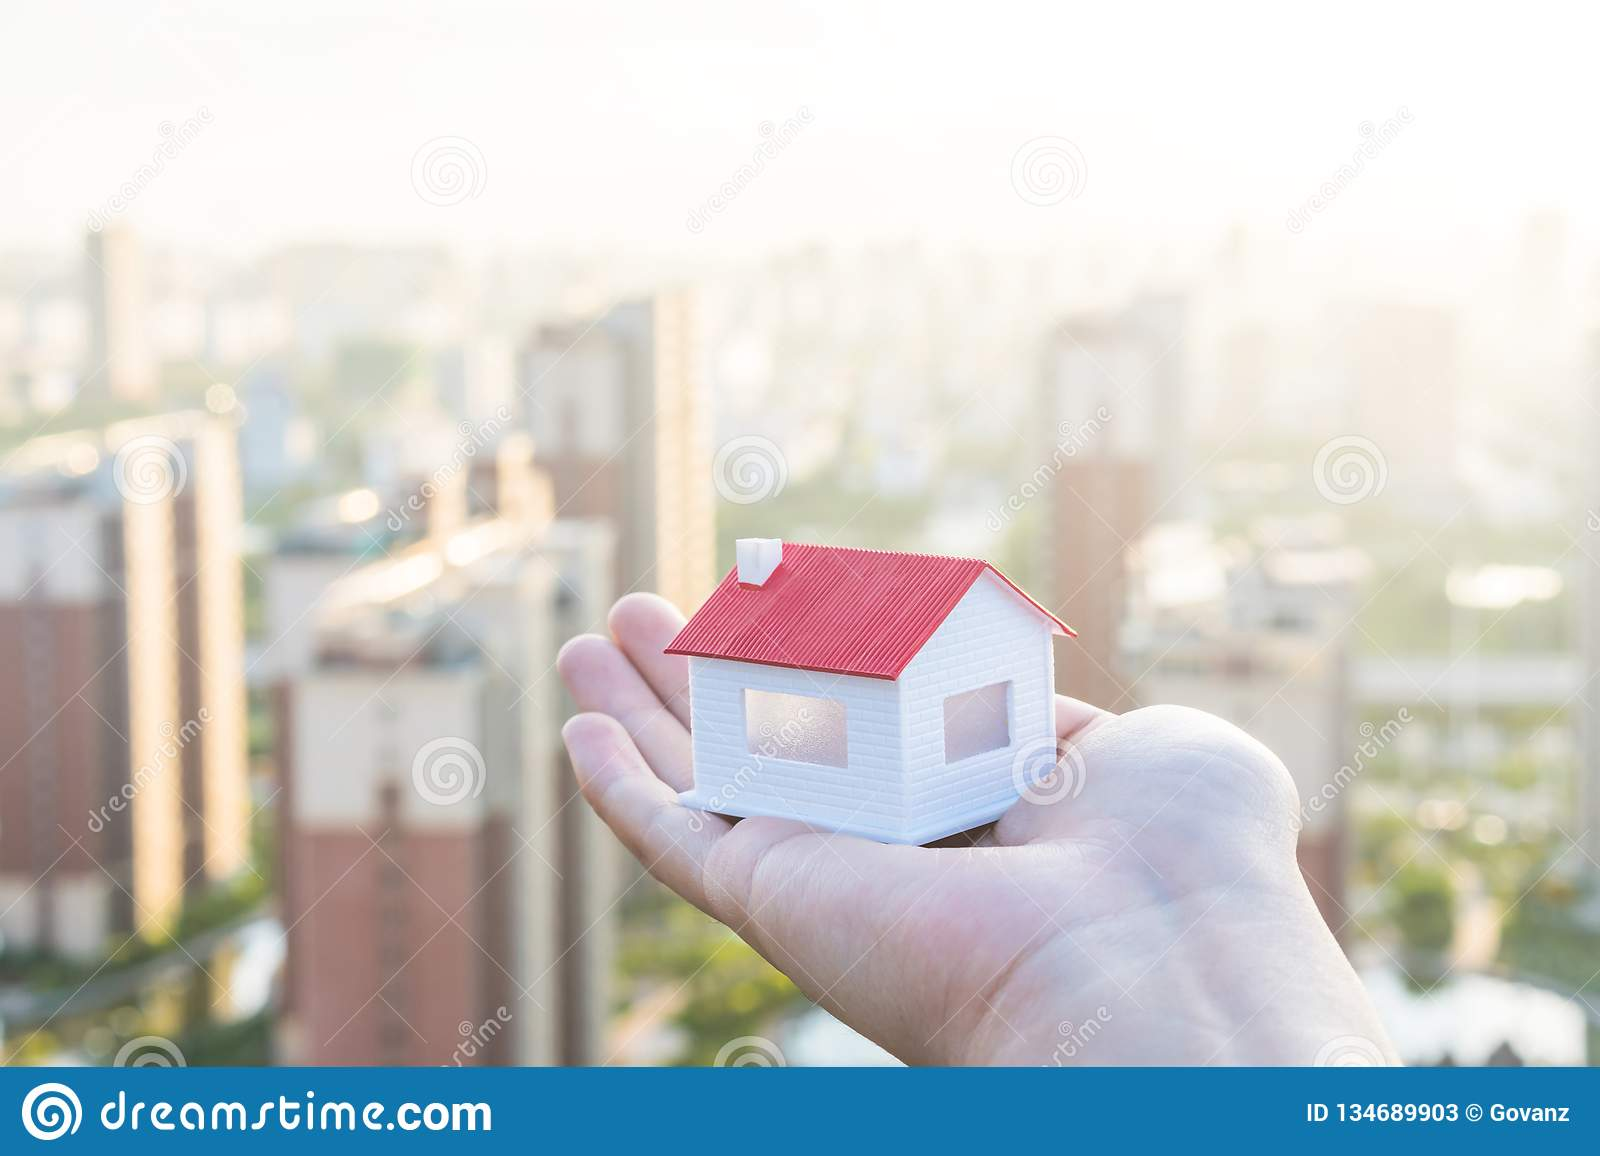 Buy a house, put a model of the house in hand